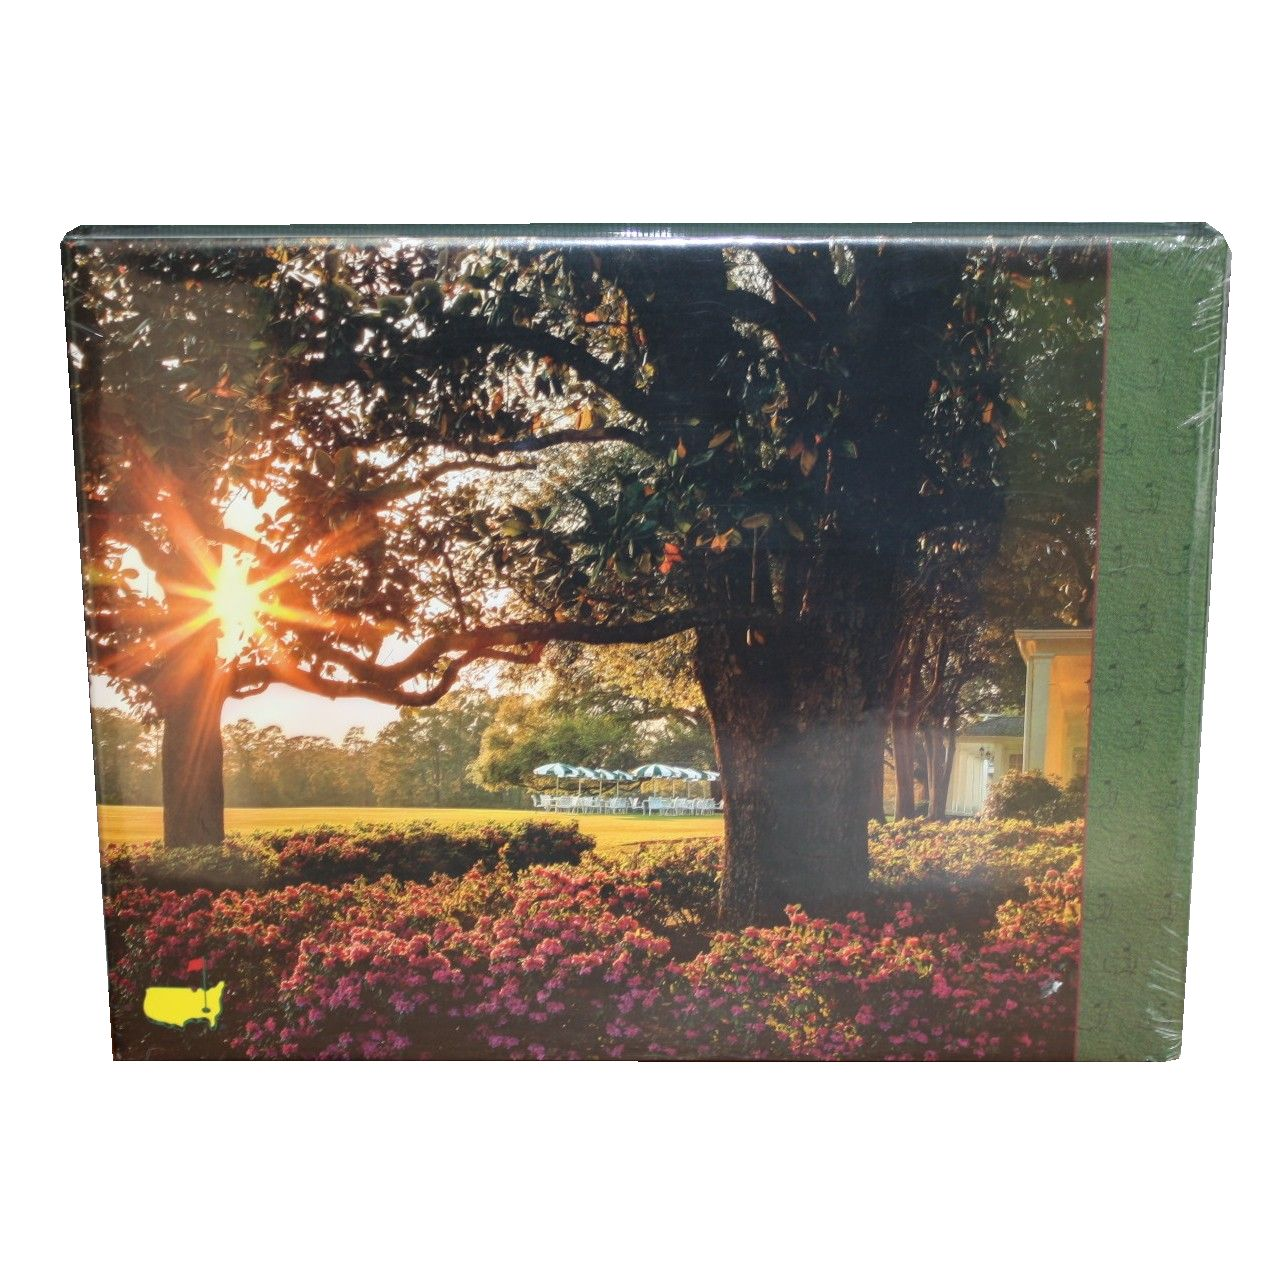 Astounding Masters Golf Coffee Table Book Rascalartsnyc Gmtry Best Dining Table And Chair Ideas Images Gmtryco